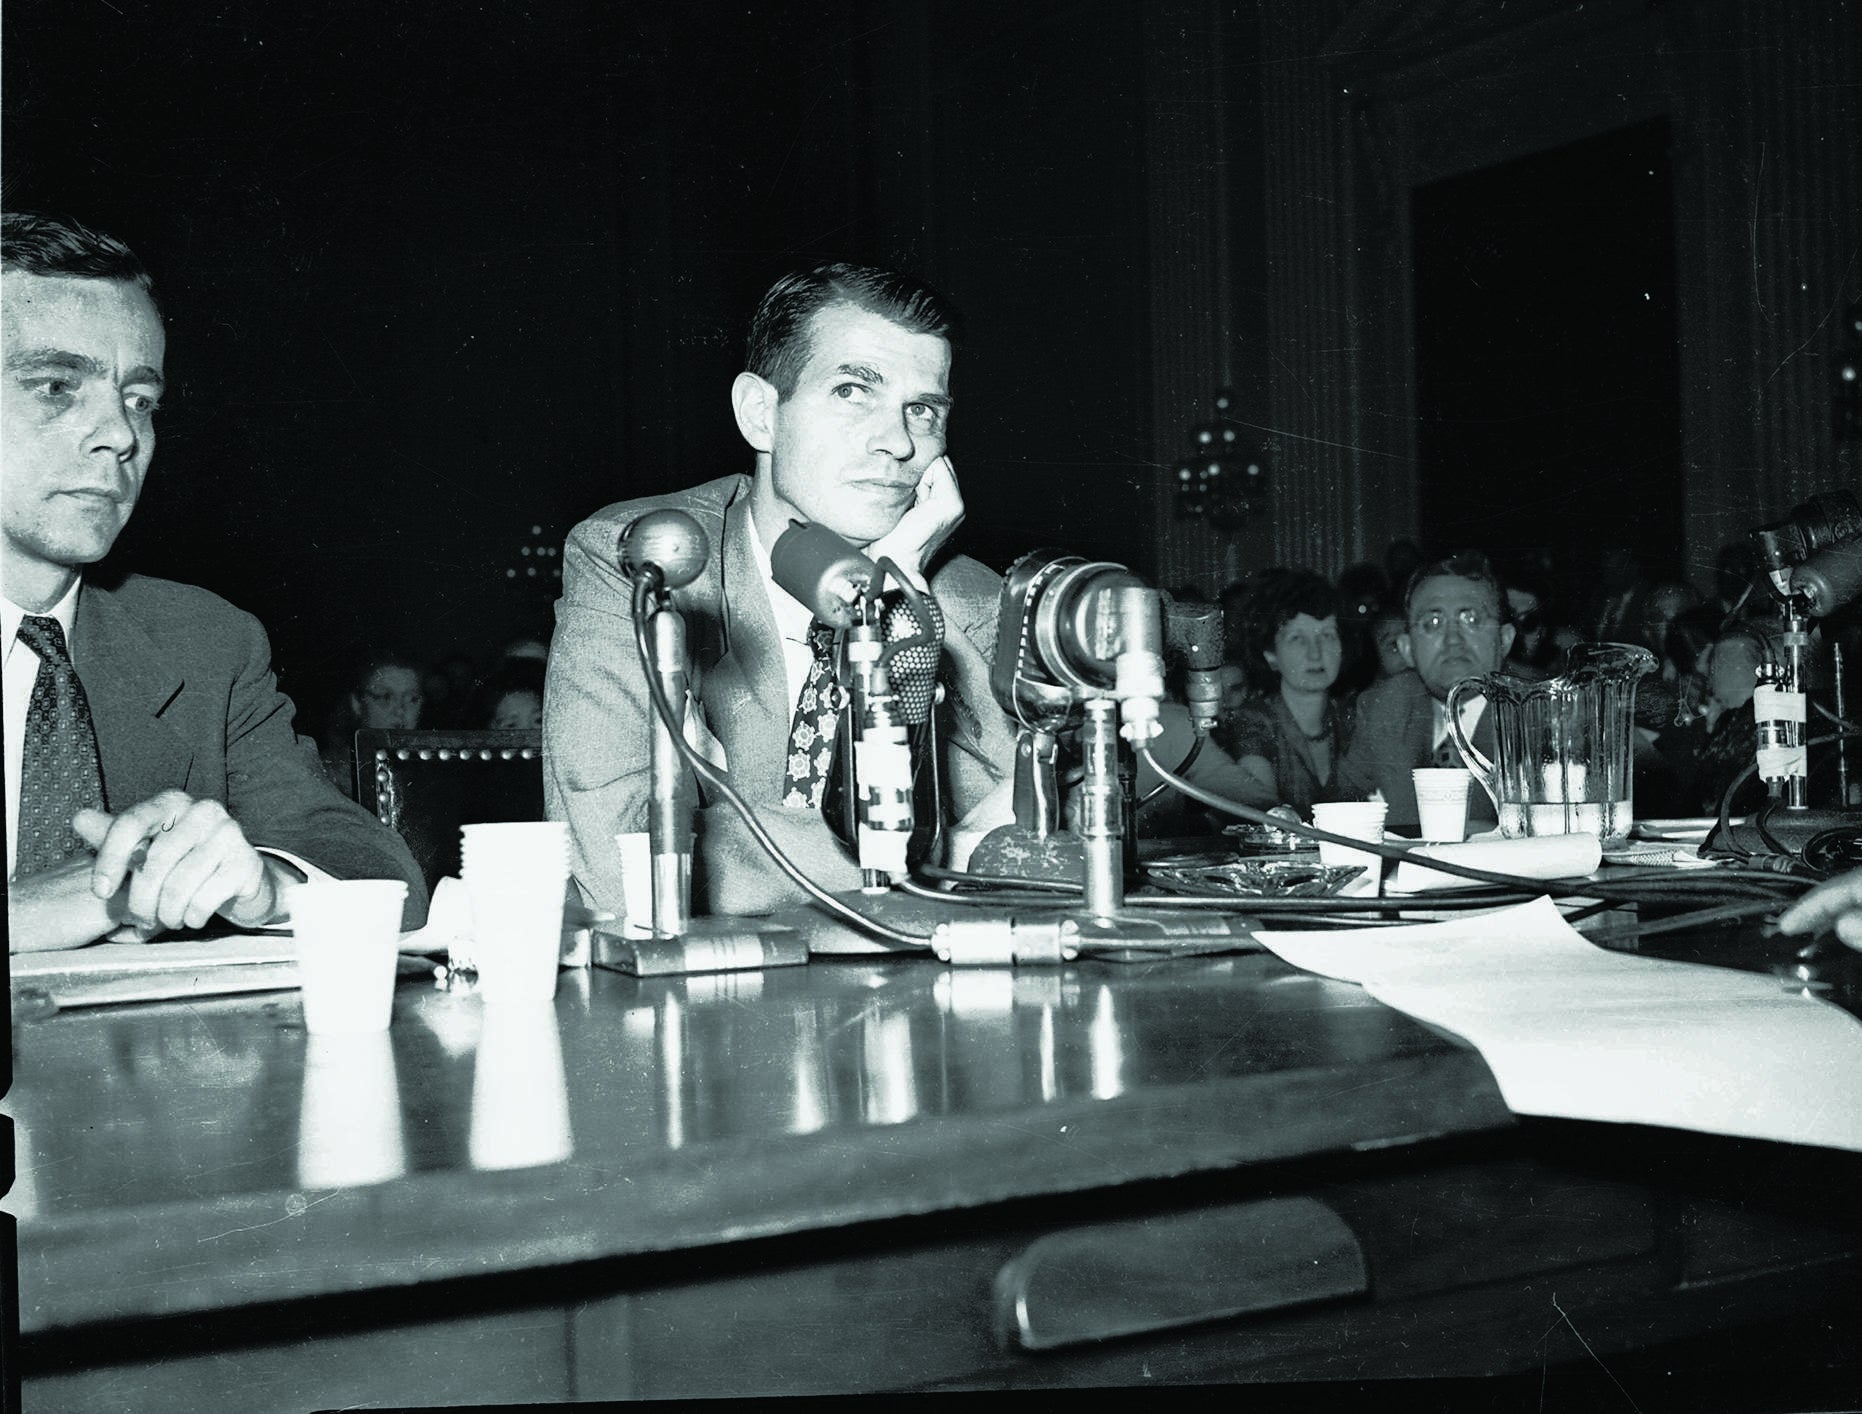 The court case that Richard Nixon rigged